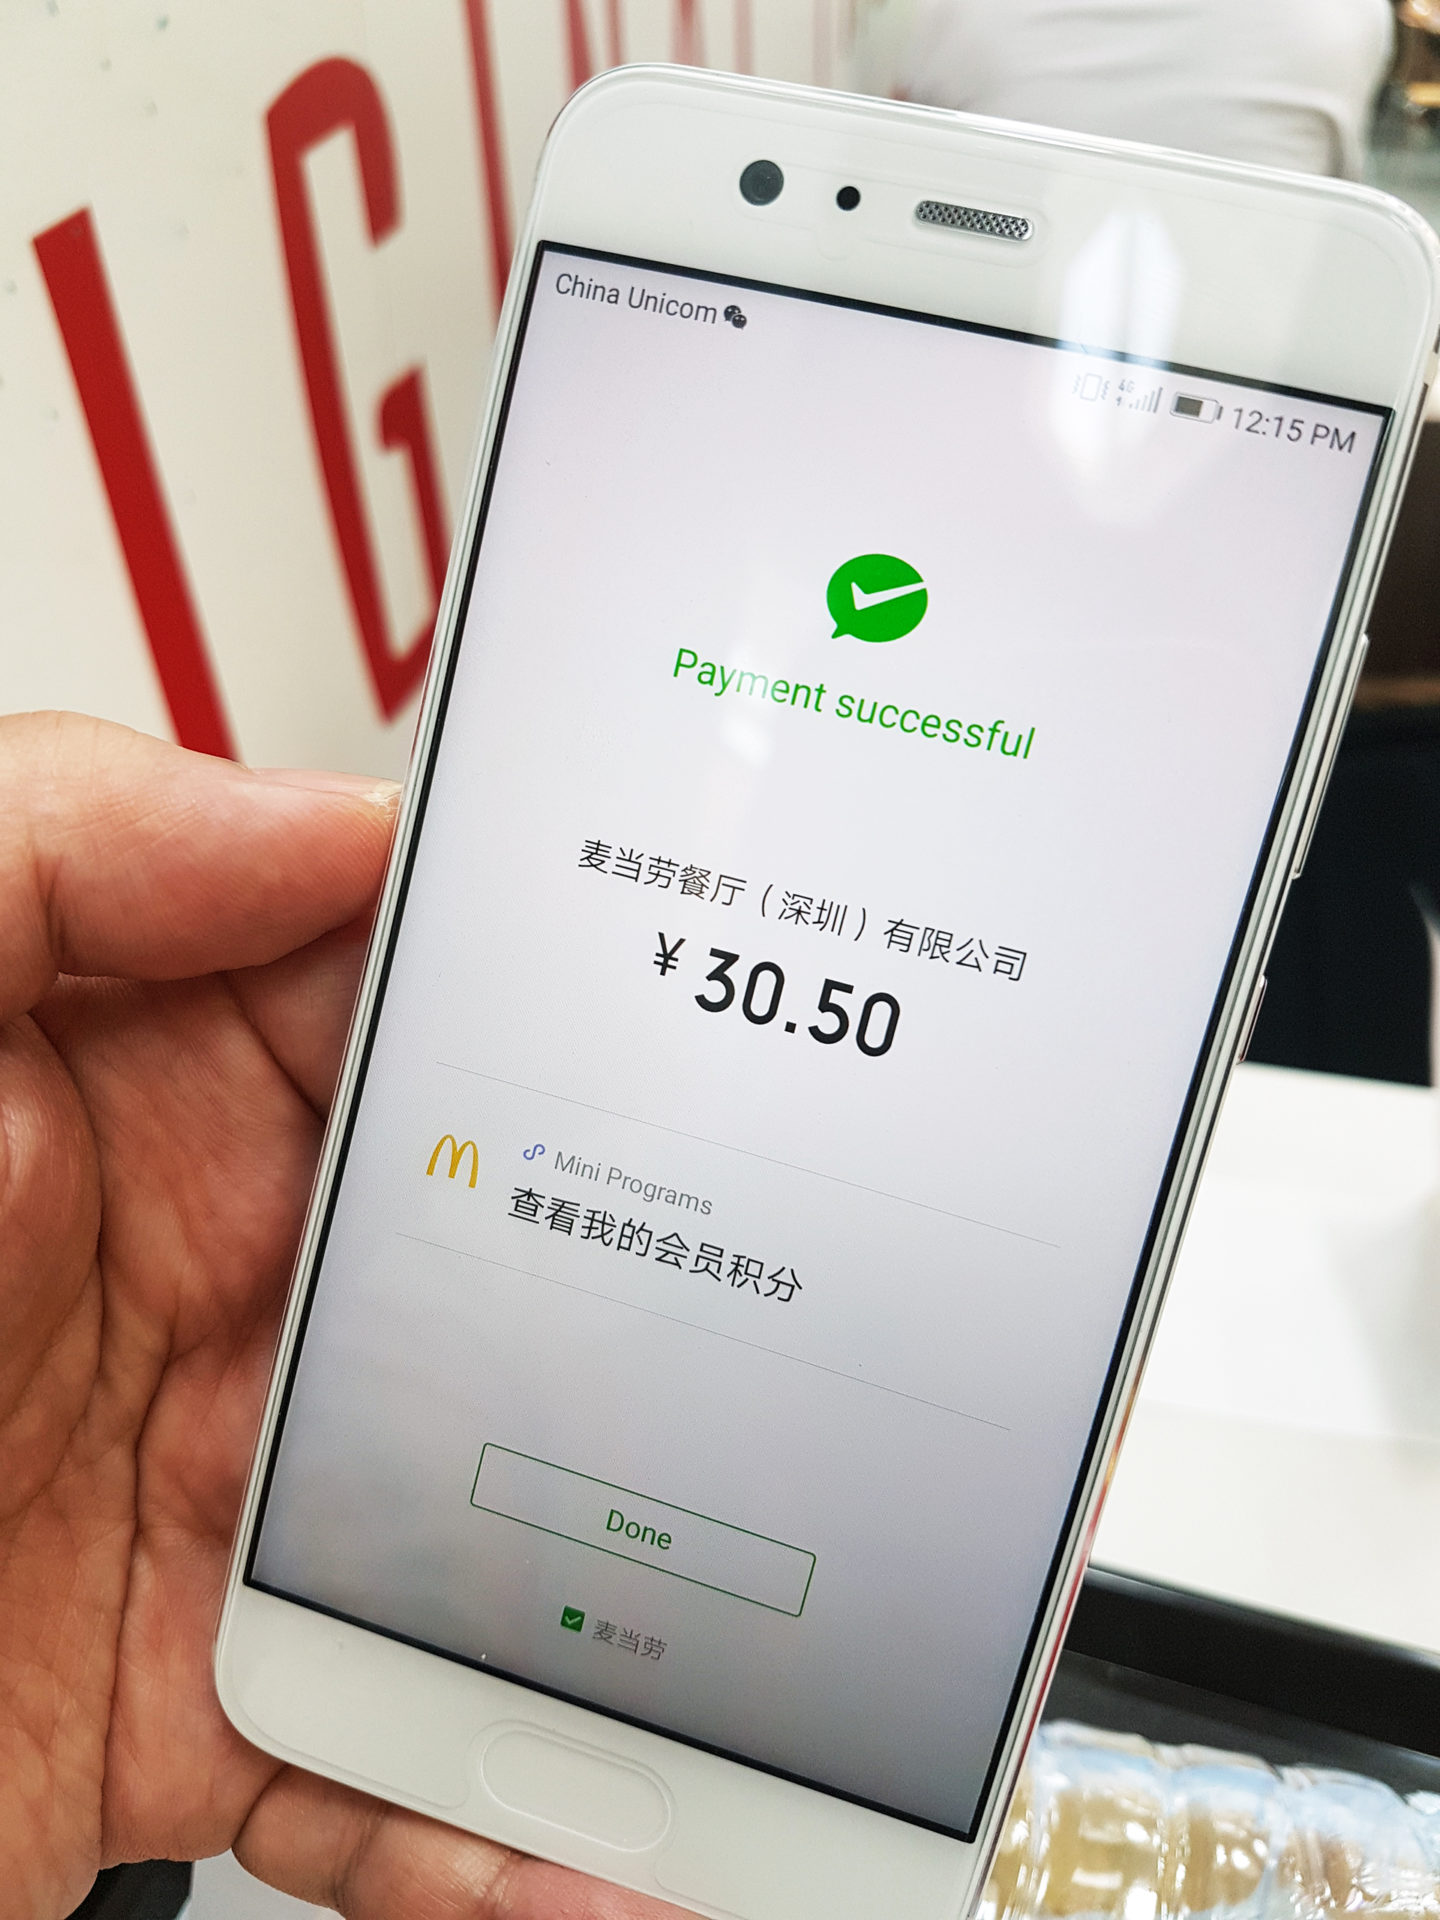 Lessons On Mobile Payment From Wechat Pay In China Techgoondu Wiring Money To